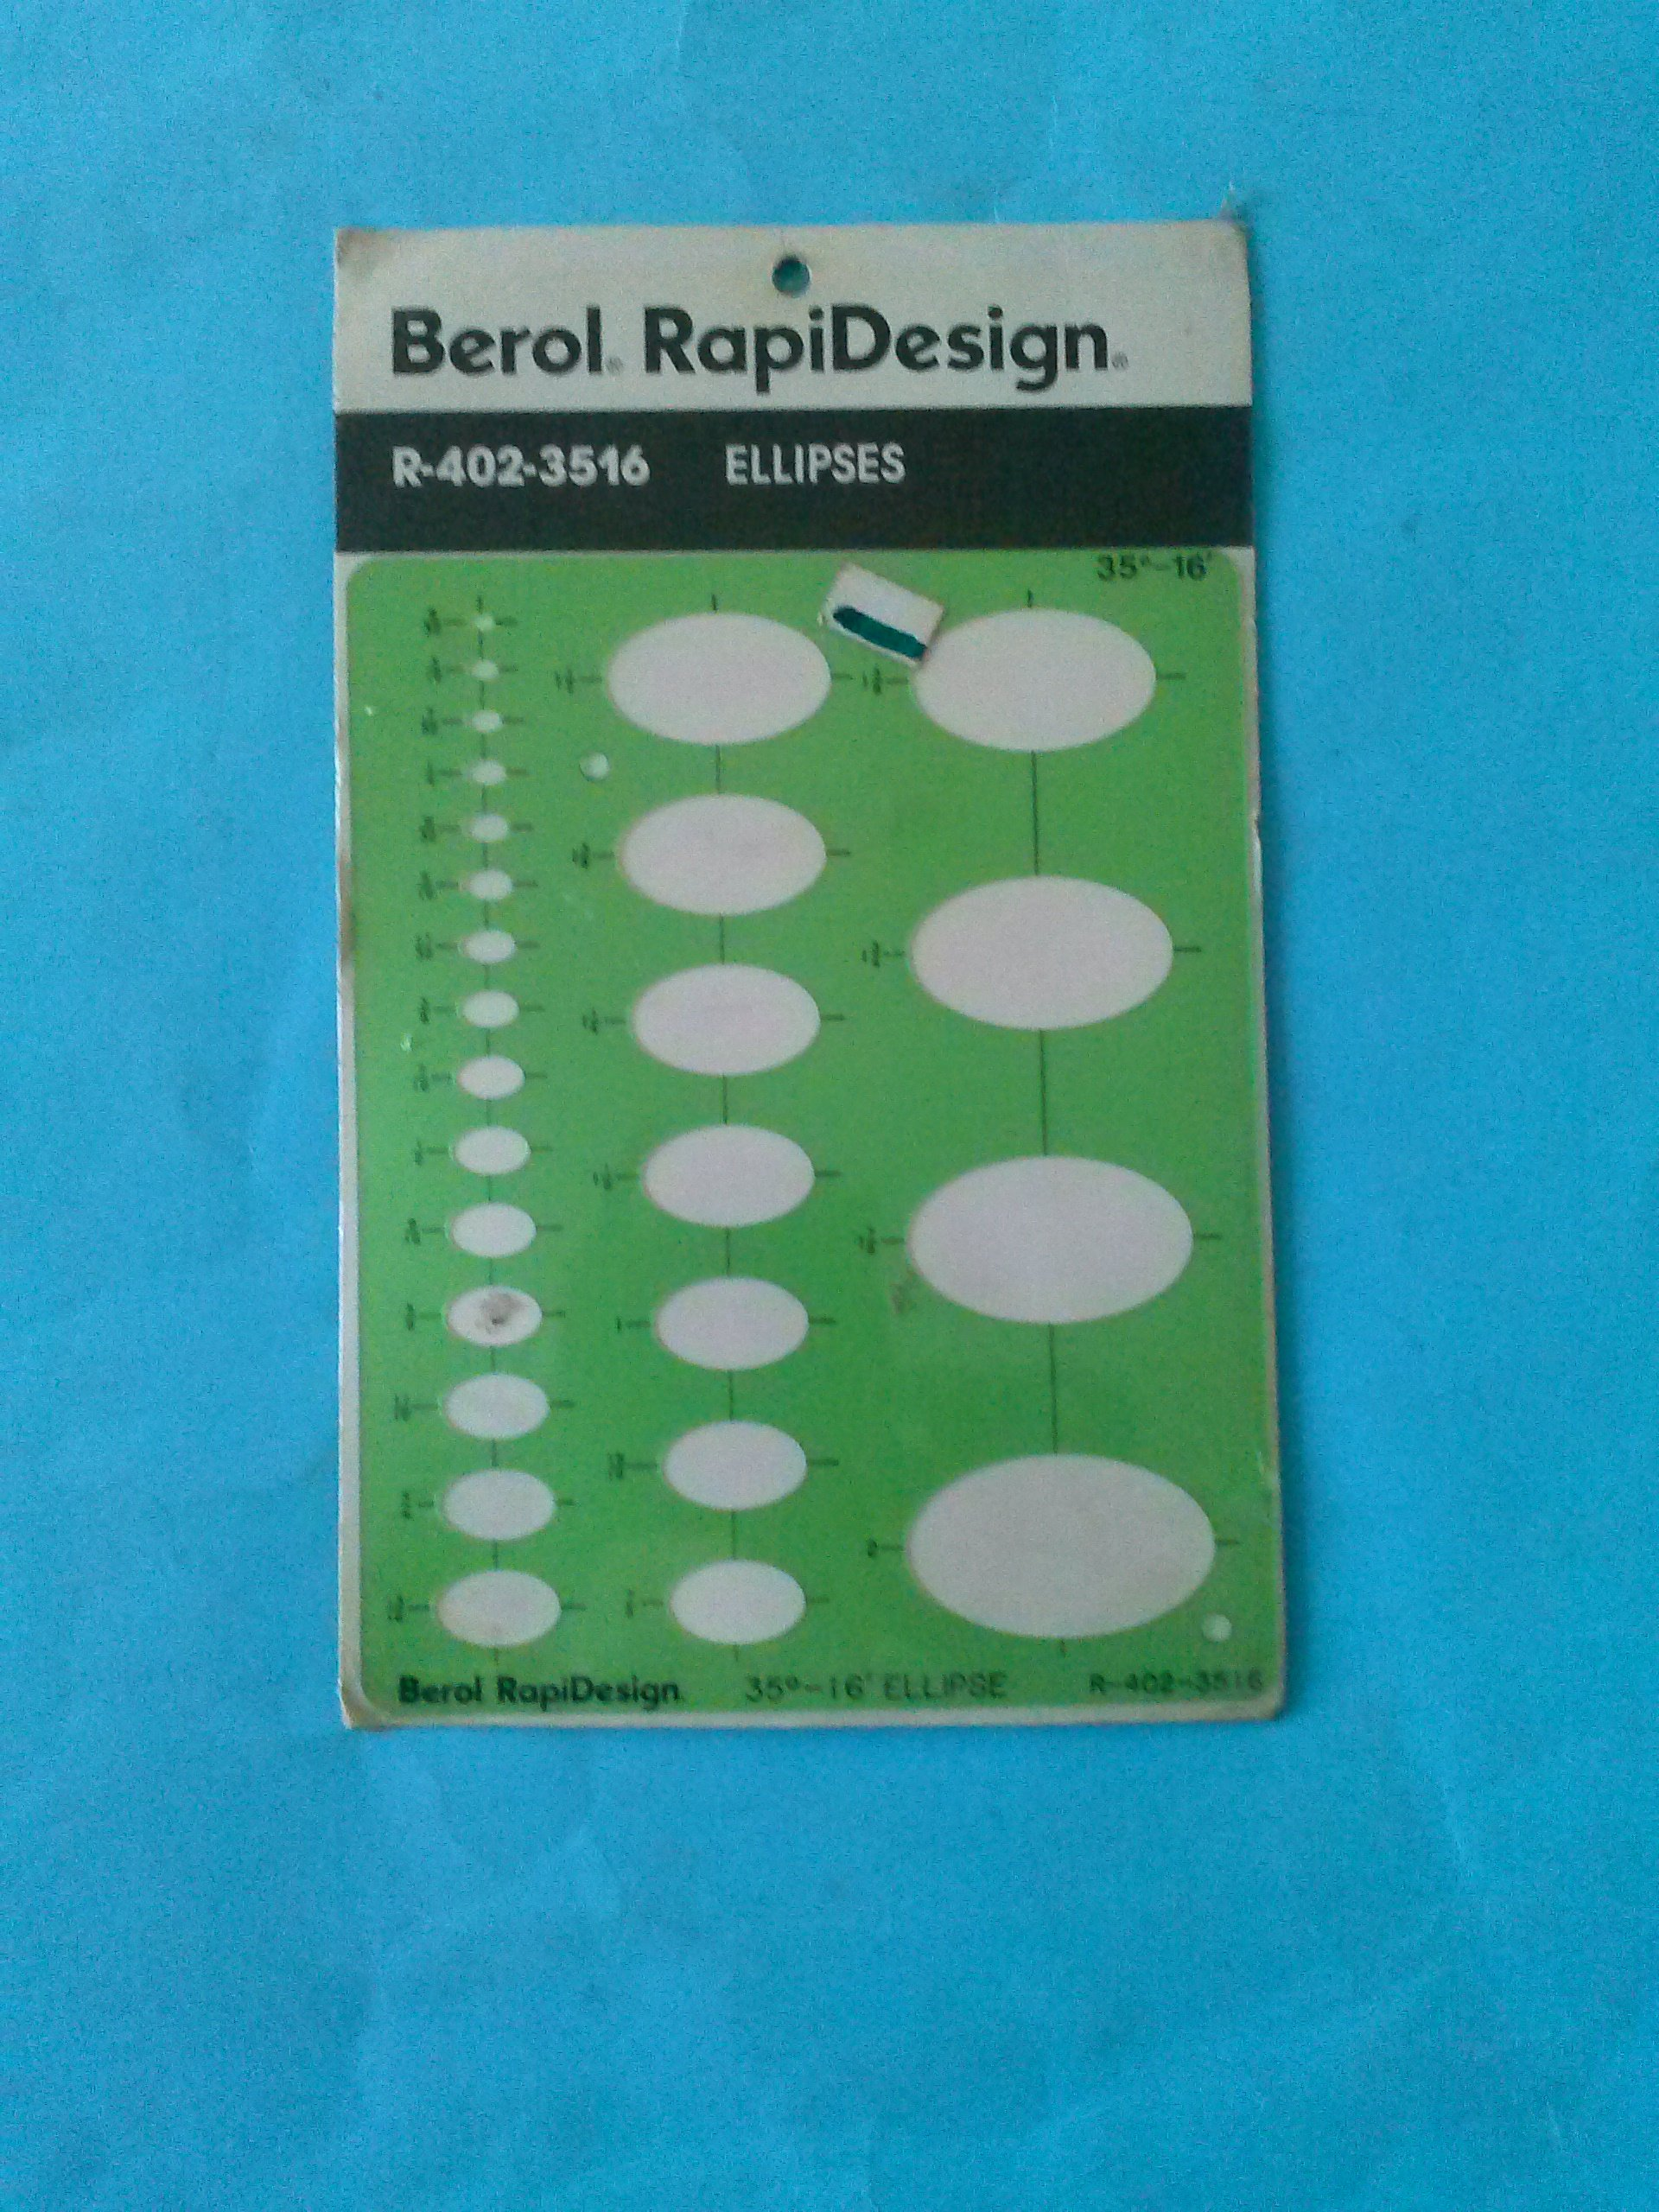 Berol RapiDesign R-402-3516 Technical Drawing Template Ellipses Made in USA by RAPIDESIGN (Image #1)